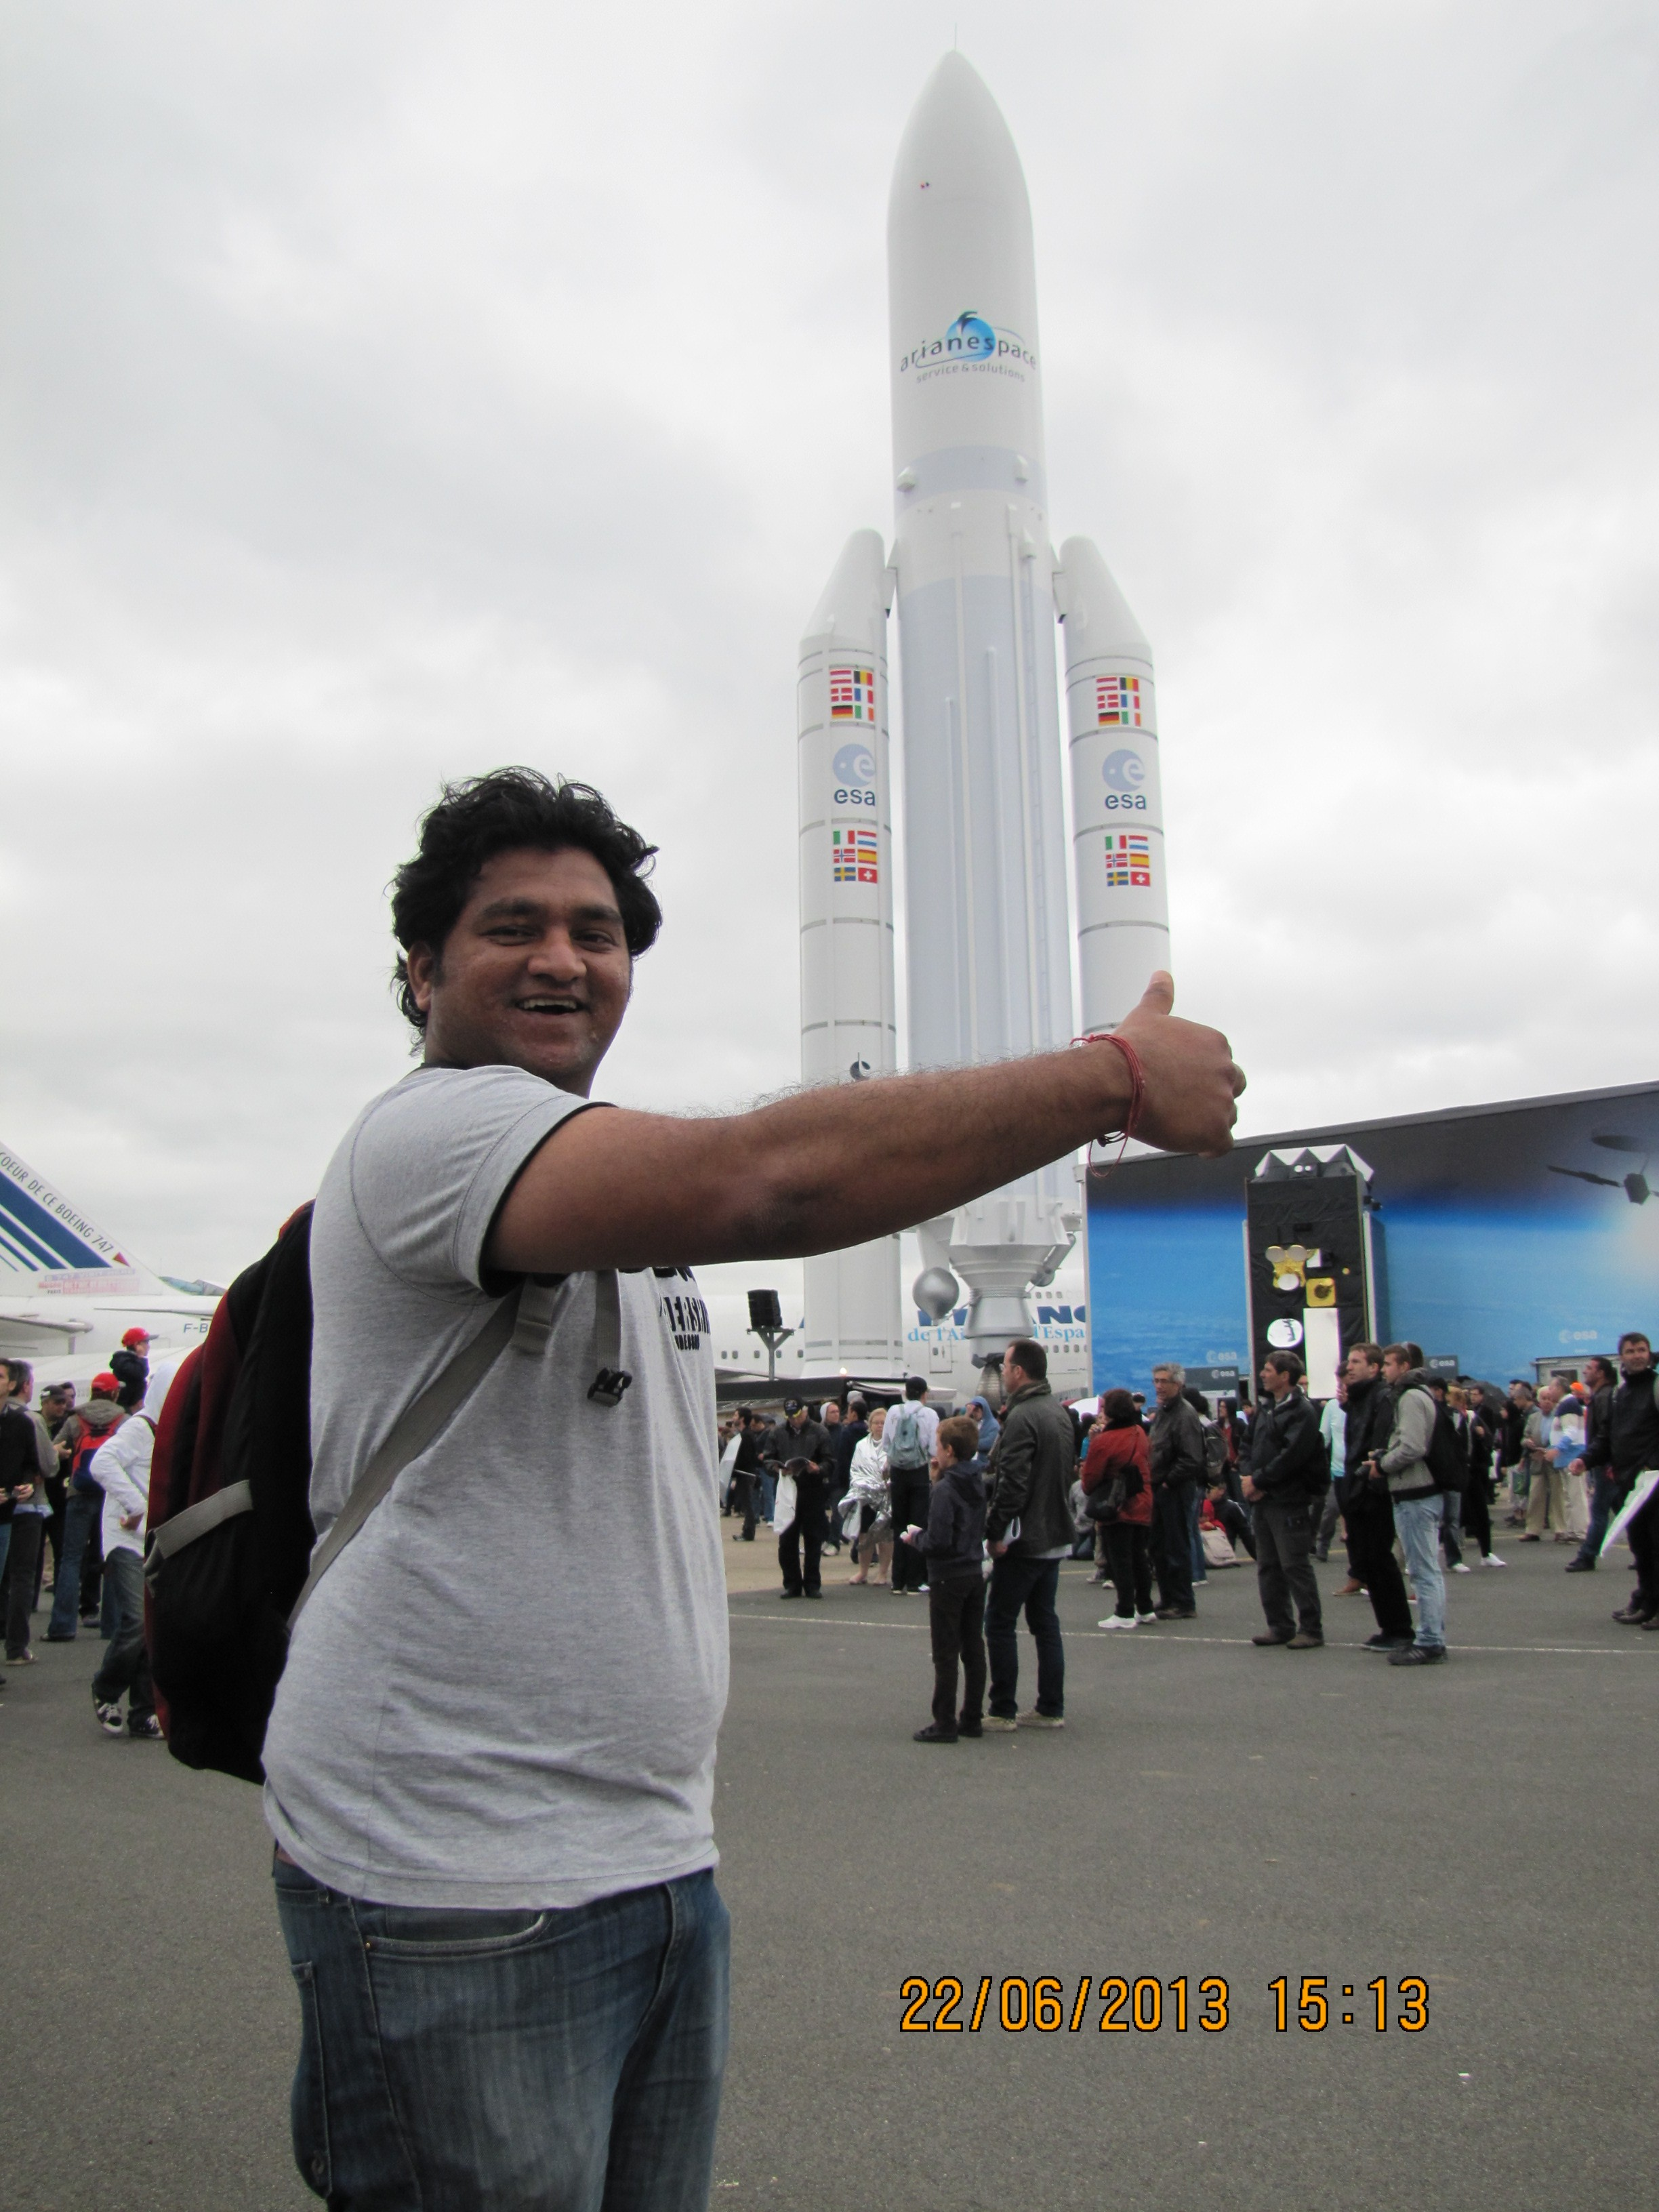 amit chougule in paris air show